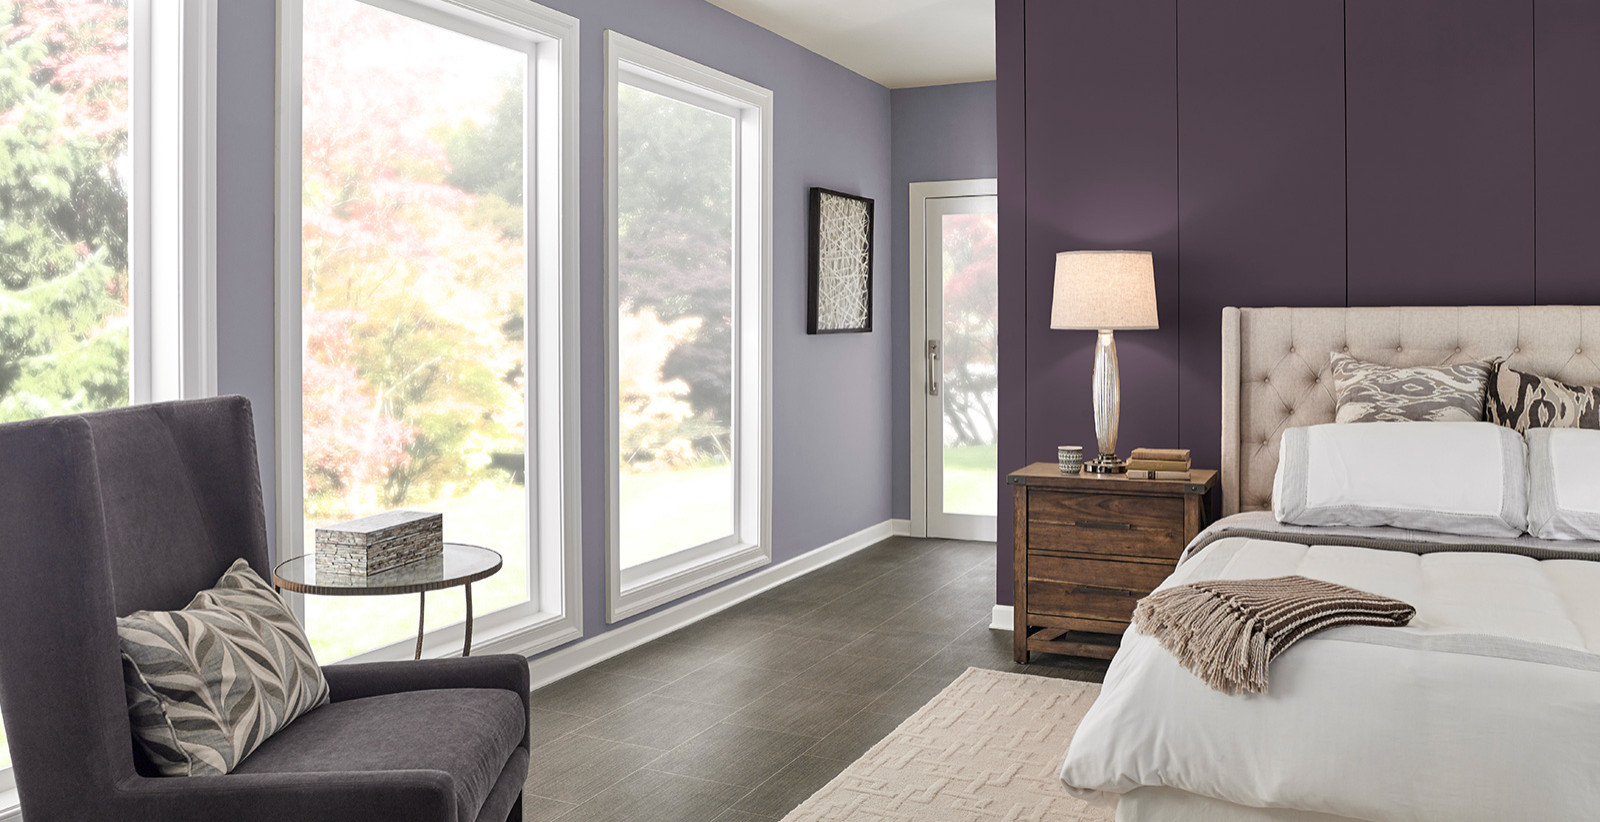 Bedroom - Behr paint